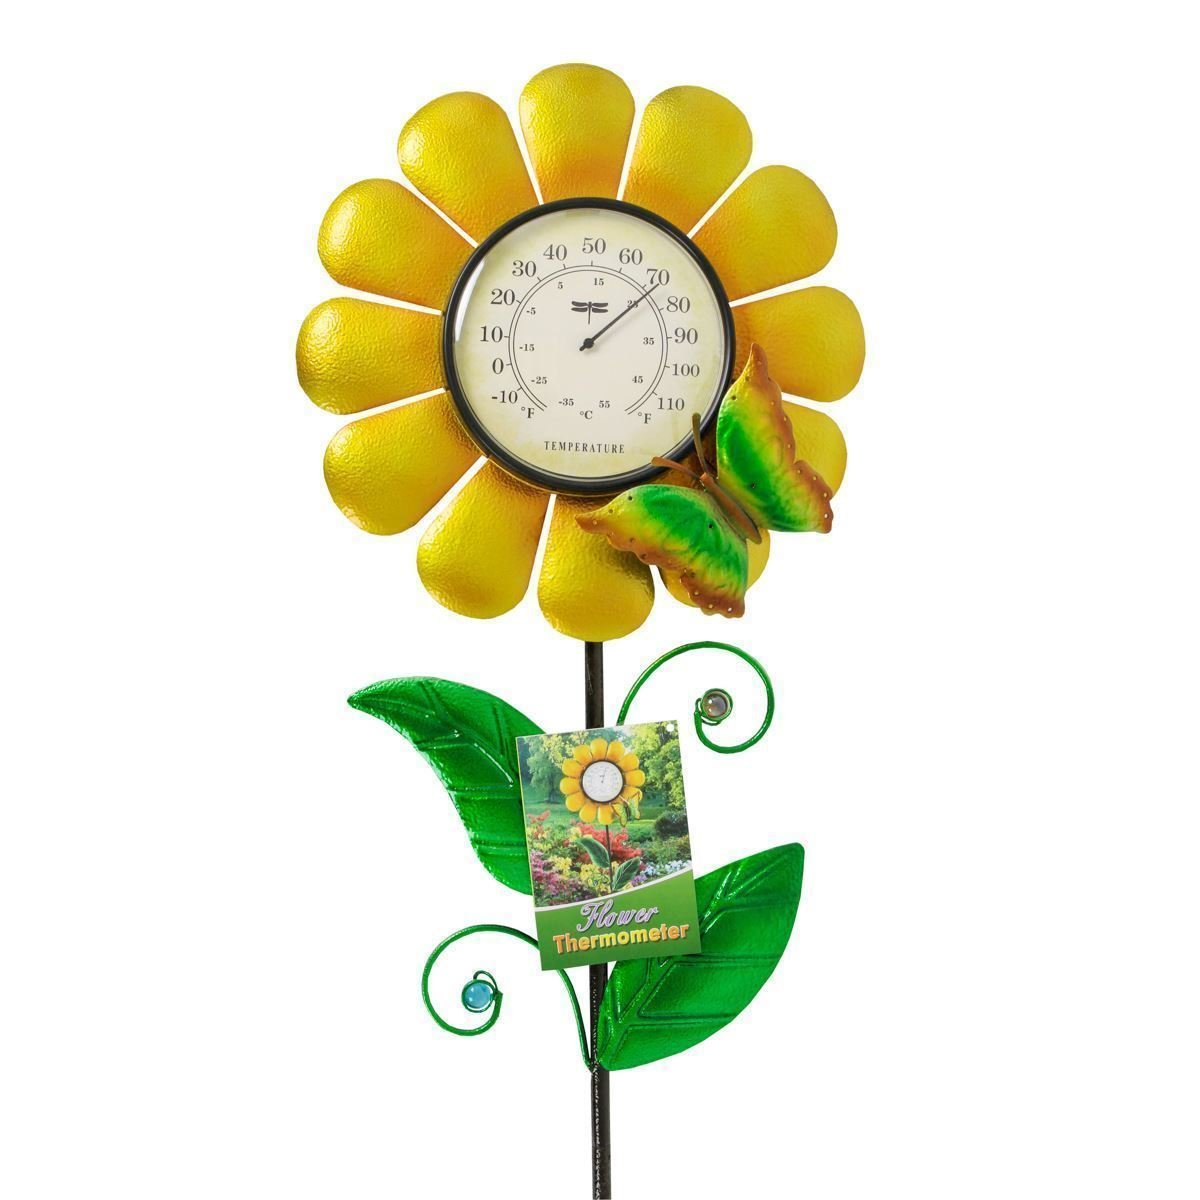 Whimsical Garden 74159 Sunflower Garden Thermometer, Mid Size, Yellow